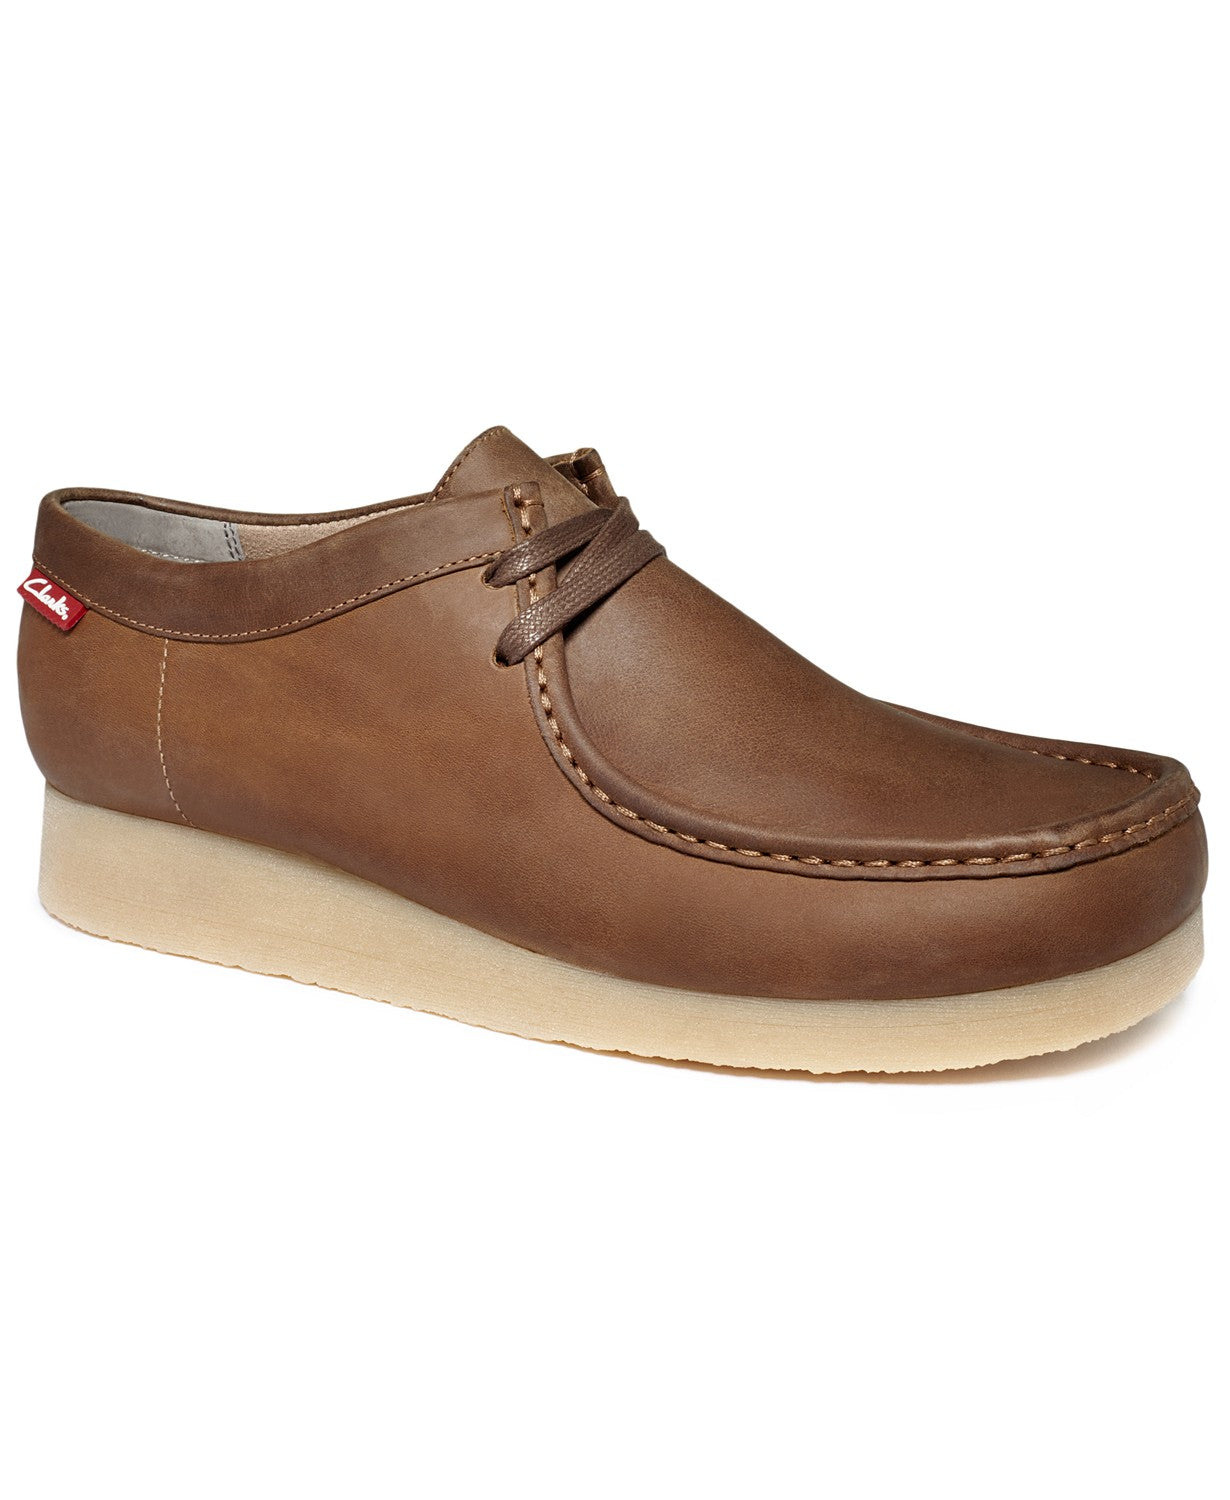 Clarks Men's Stinson Low Top Wallabee